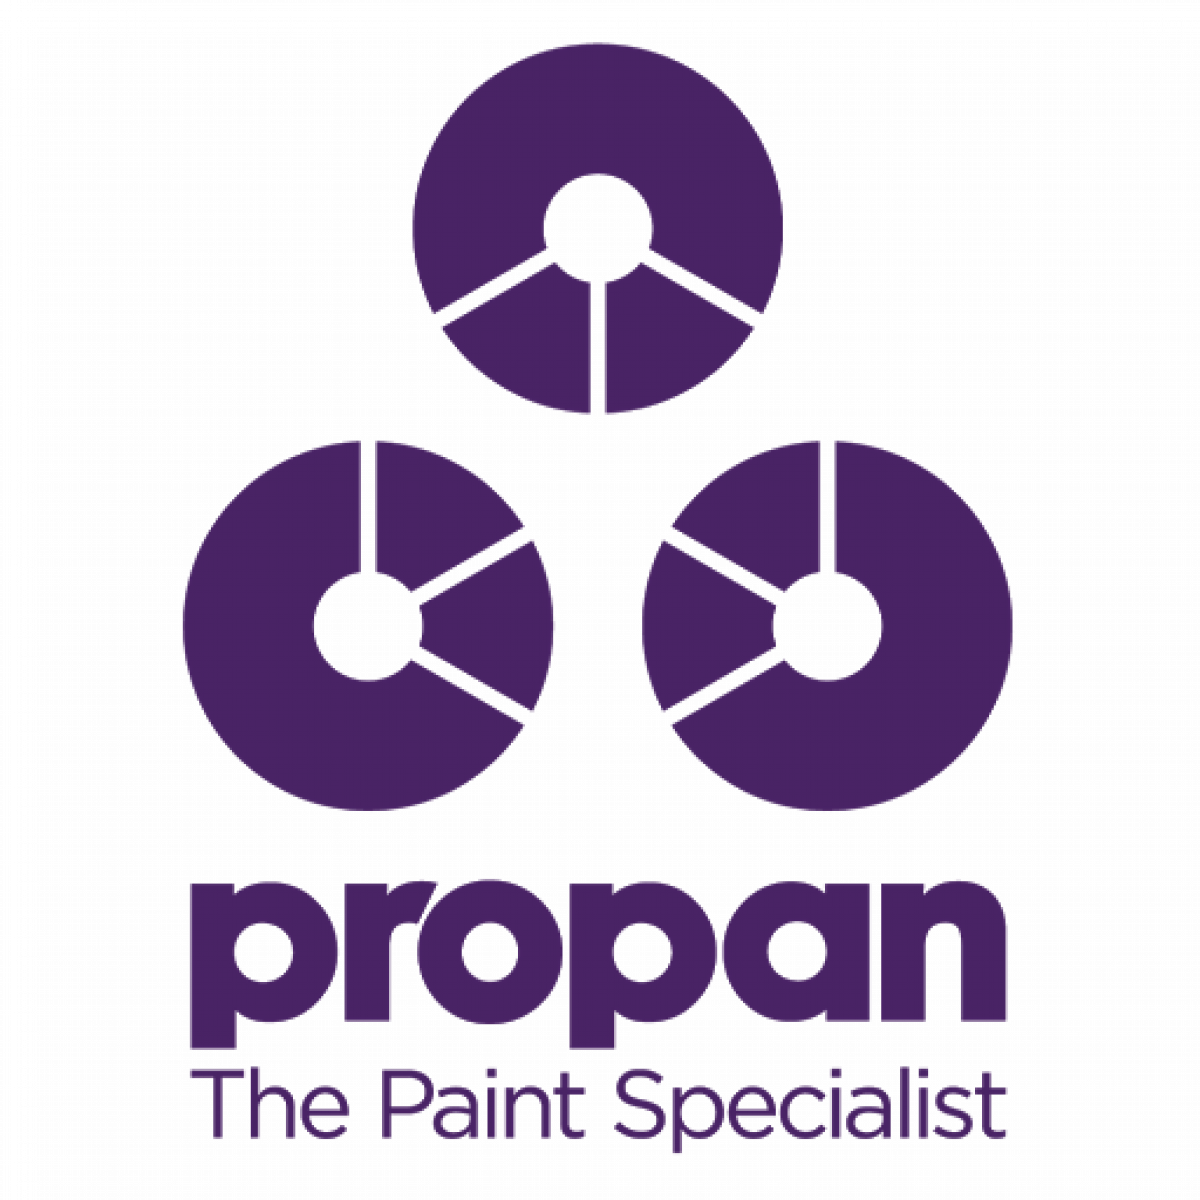 Mbna18 propan raya the paint specialist microban partner mtime20190225200928